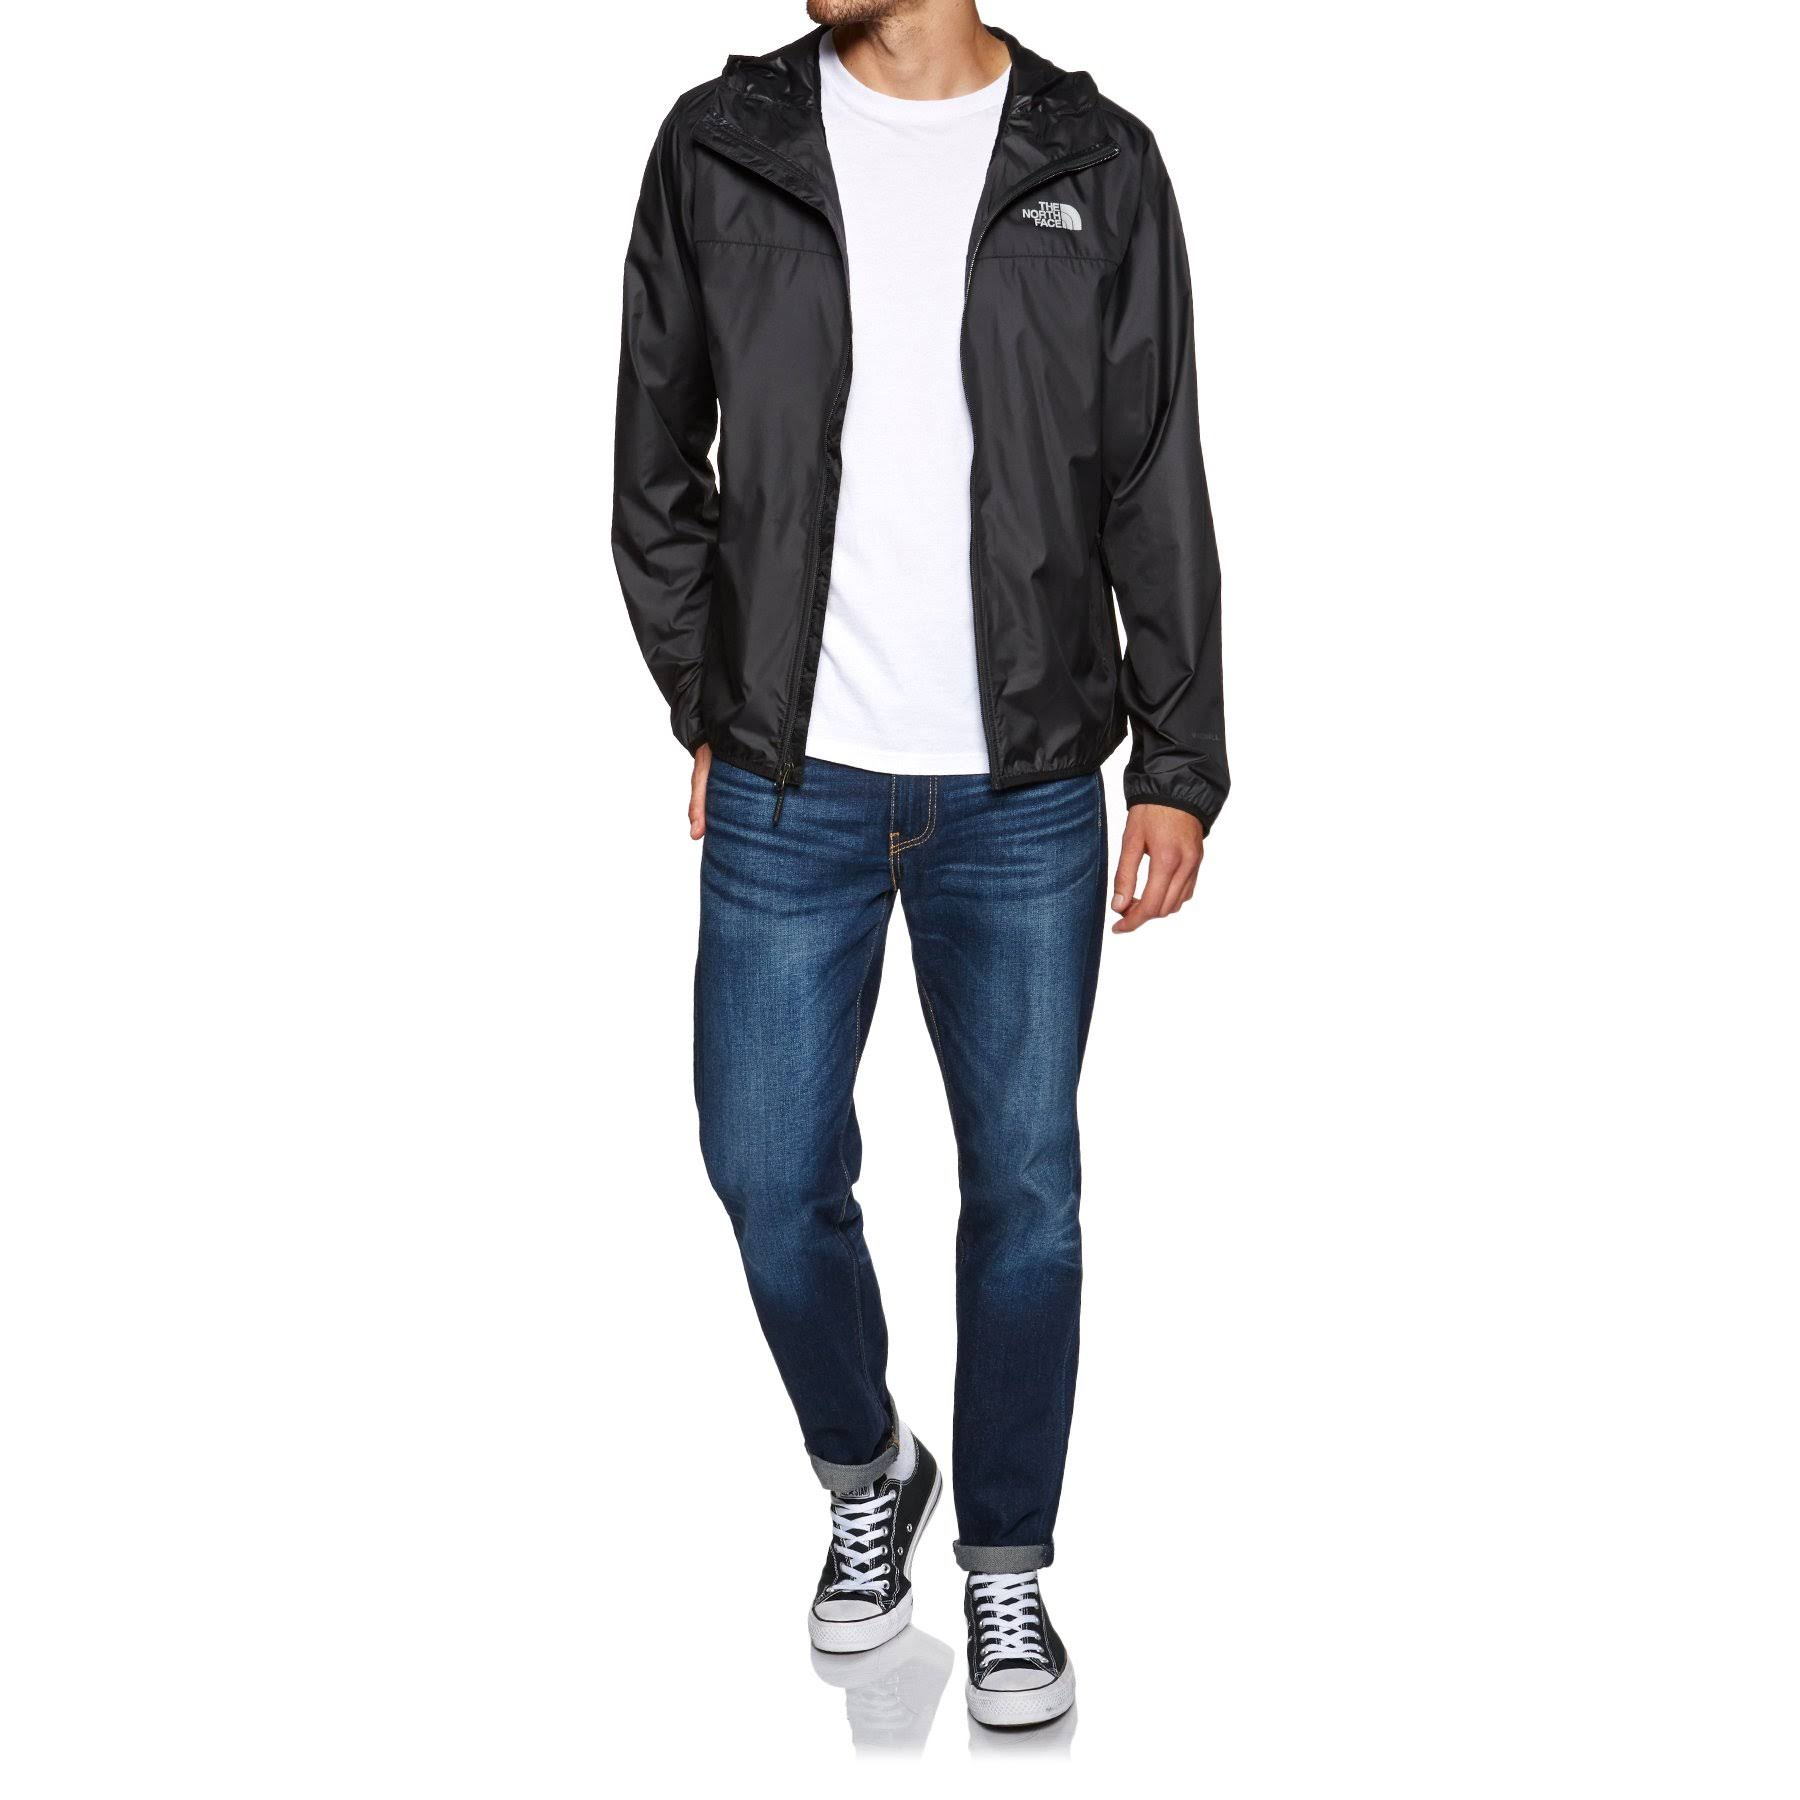 Hoodie 2 Für North Männer Small The Tnf Black Face Cyclone axqItw6X